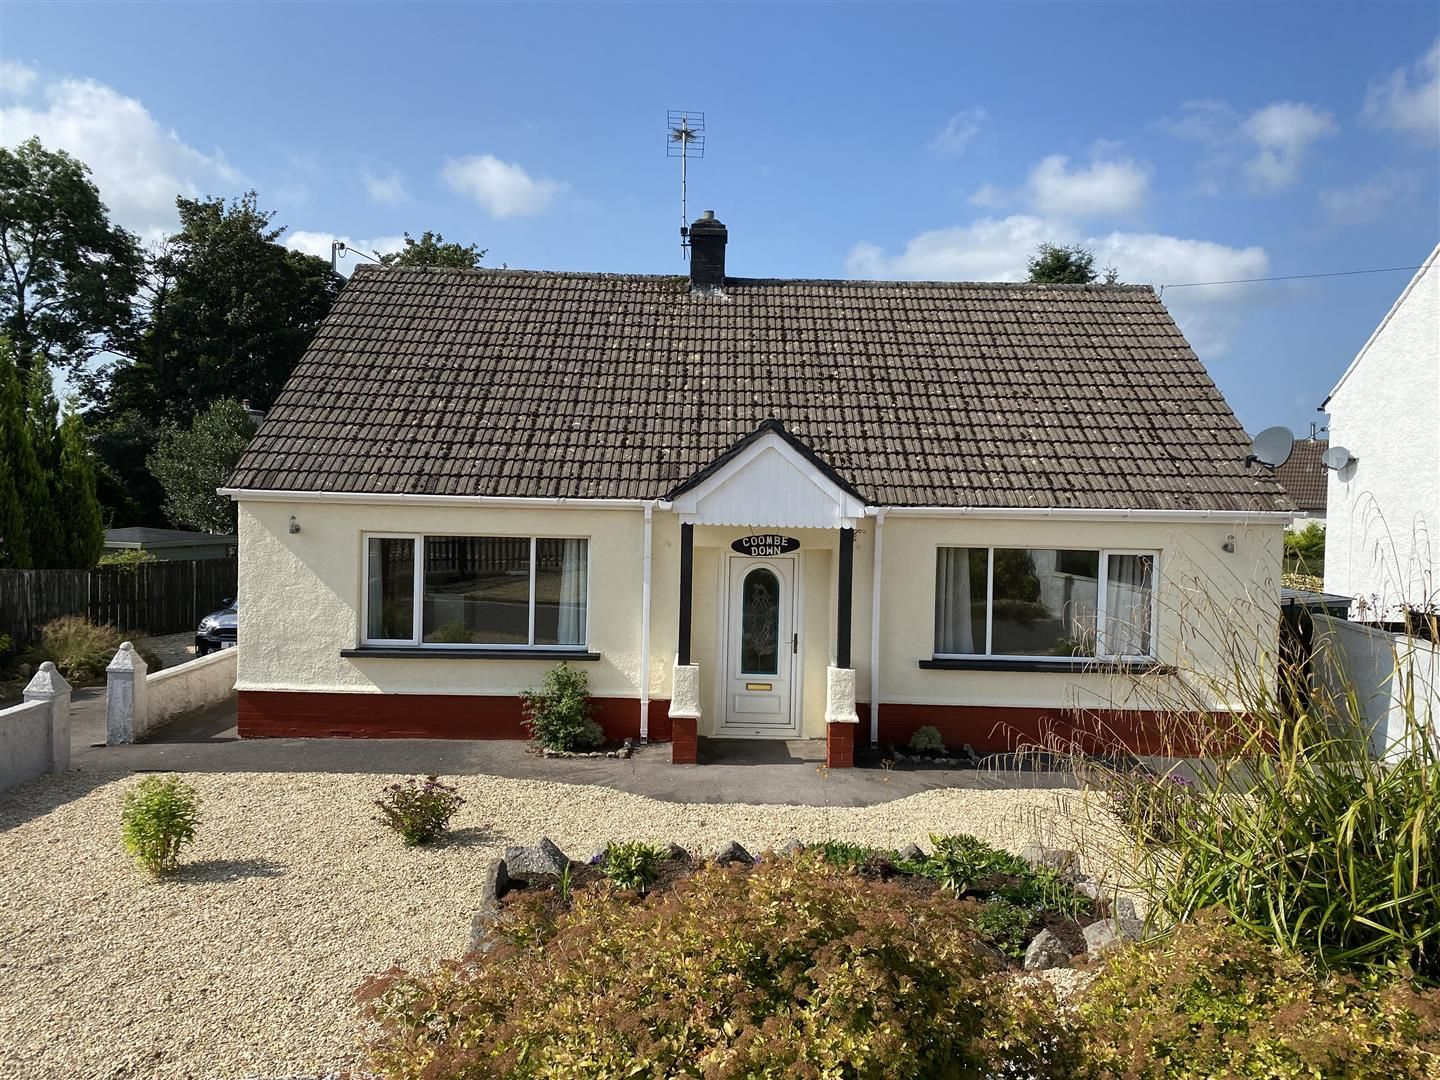 Property photo 1 of 14. Coombe Down Bungalow.Jpeg